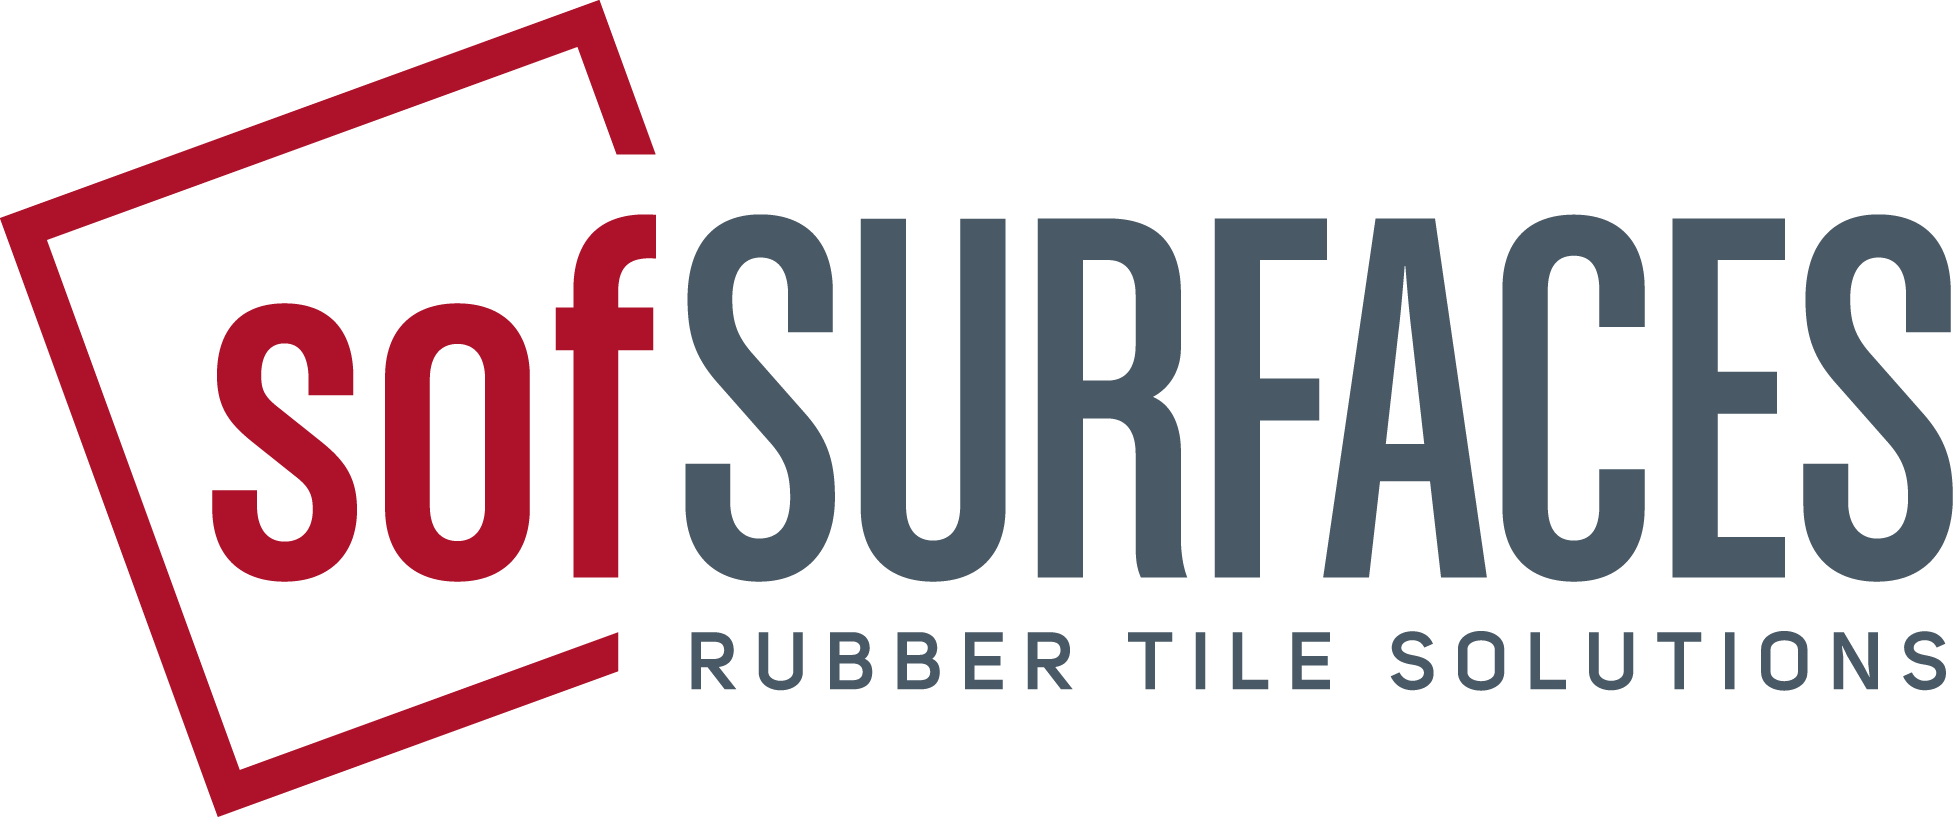 sofSURFACES logo